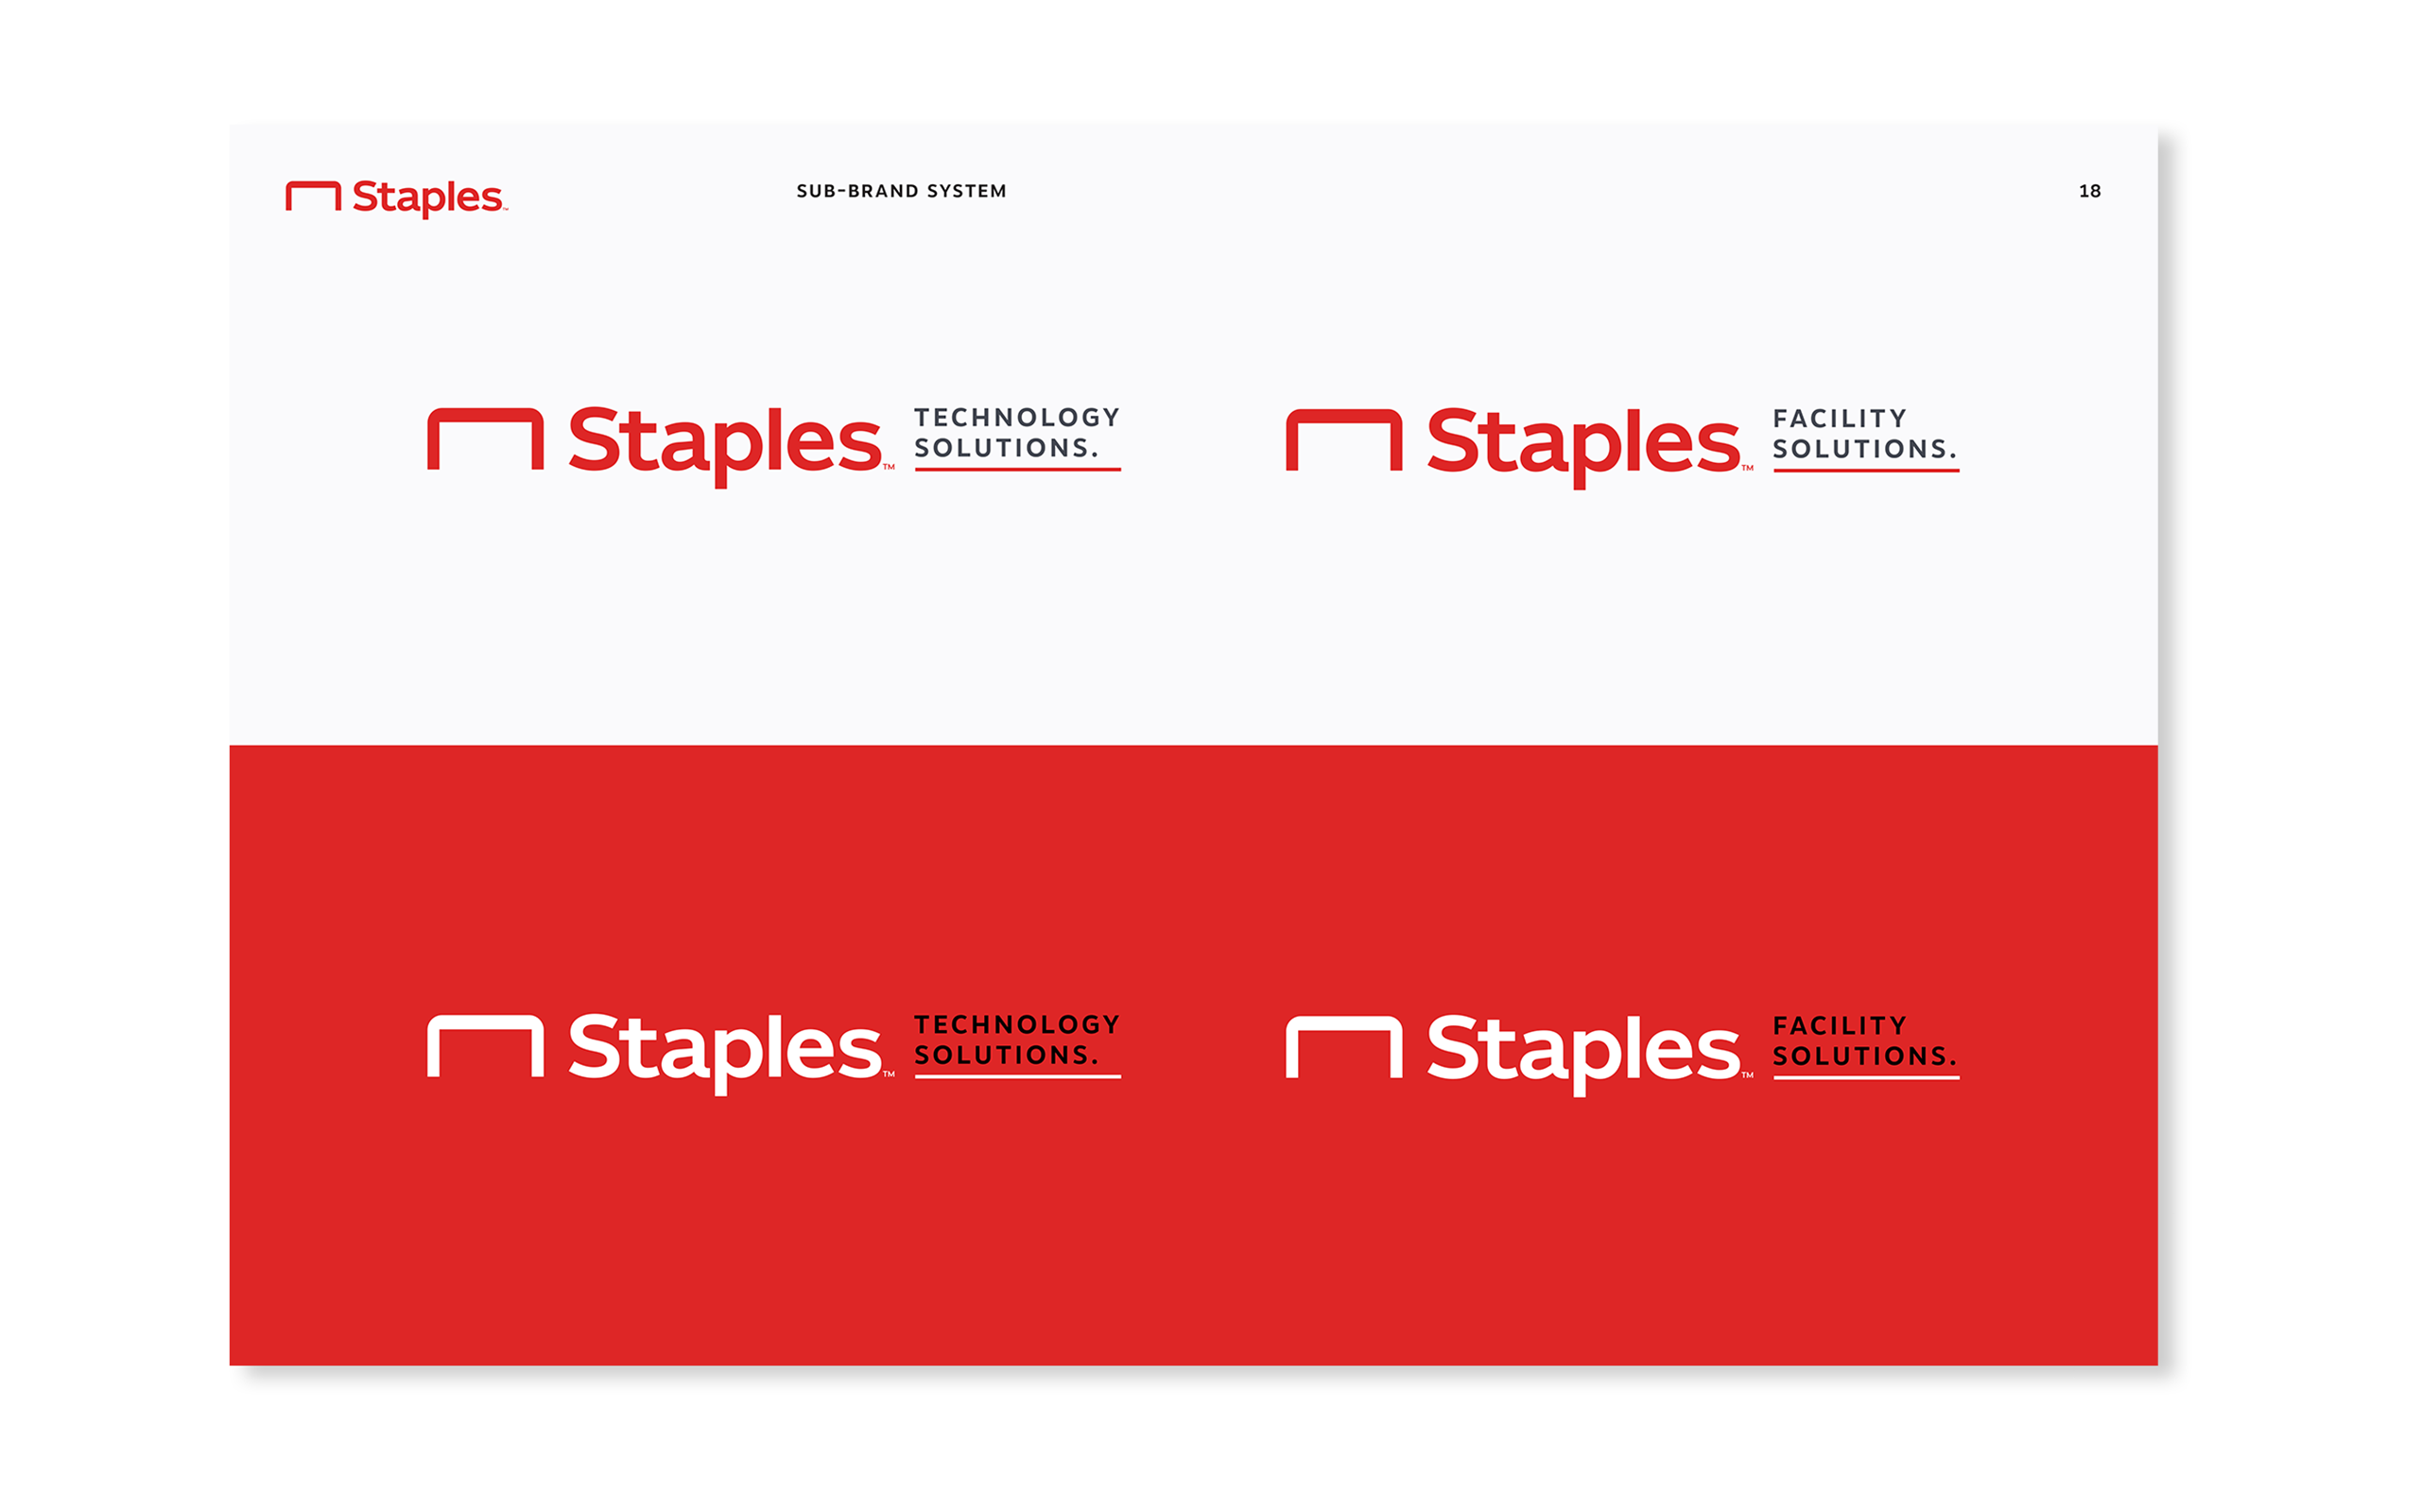 brand guidelines: sub-brand system